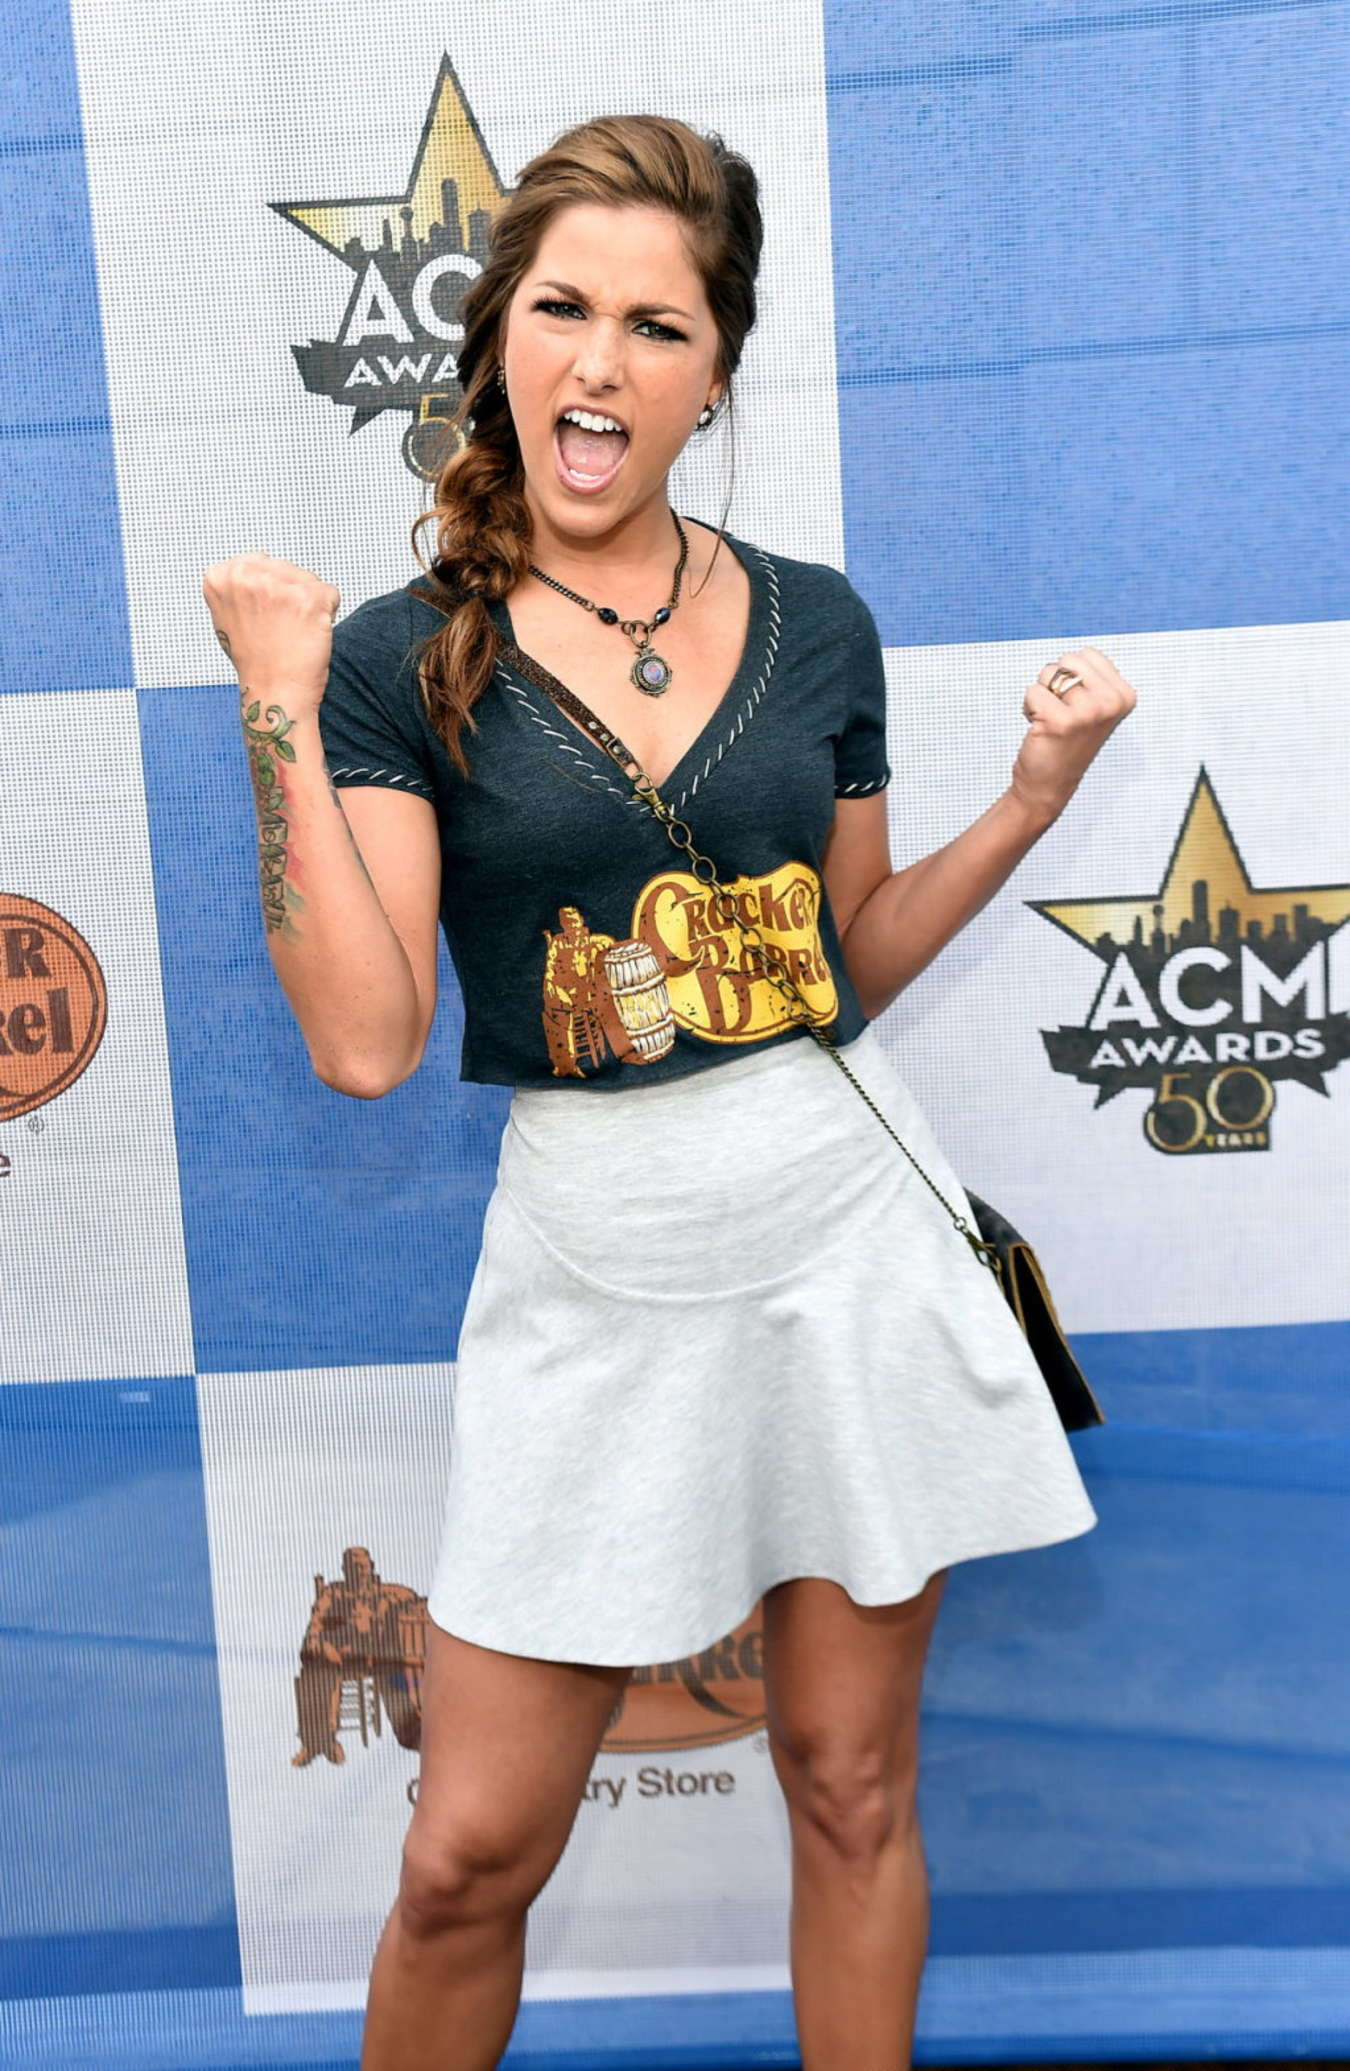 Cassadee Pope - Cracker Barrel Old Country Store Checkers Challenge in Arlington